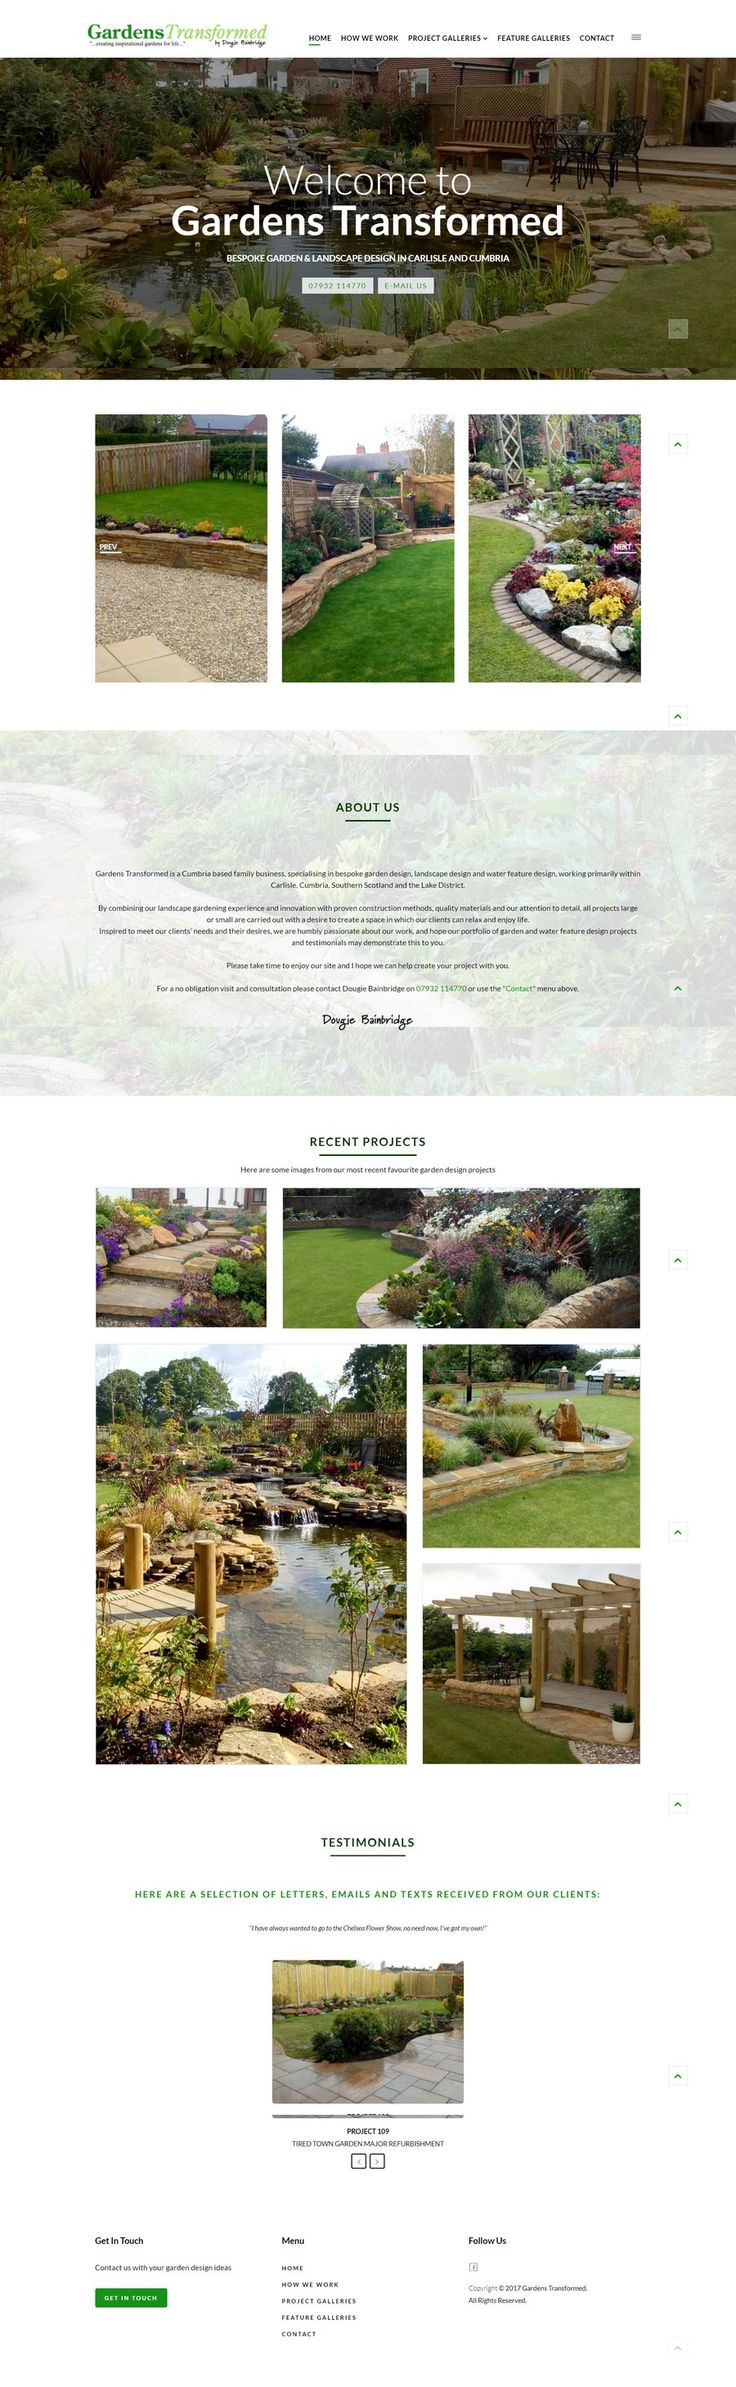 A complete redesign of the website which started us off back in 2014, Gardens Transformed....version 2 :)